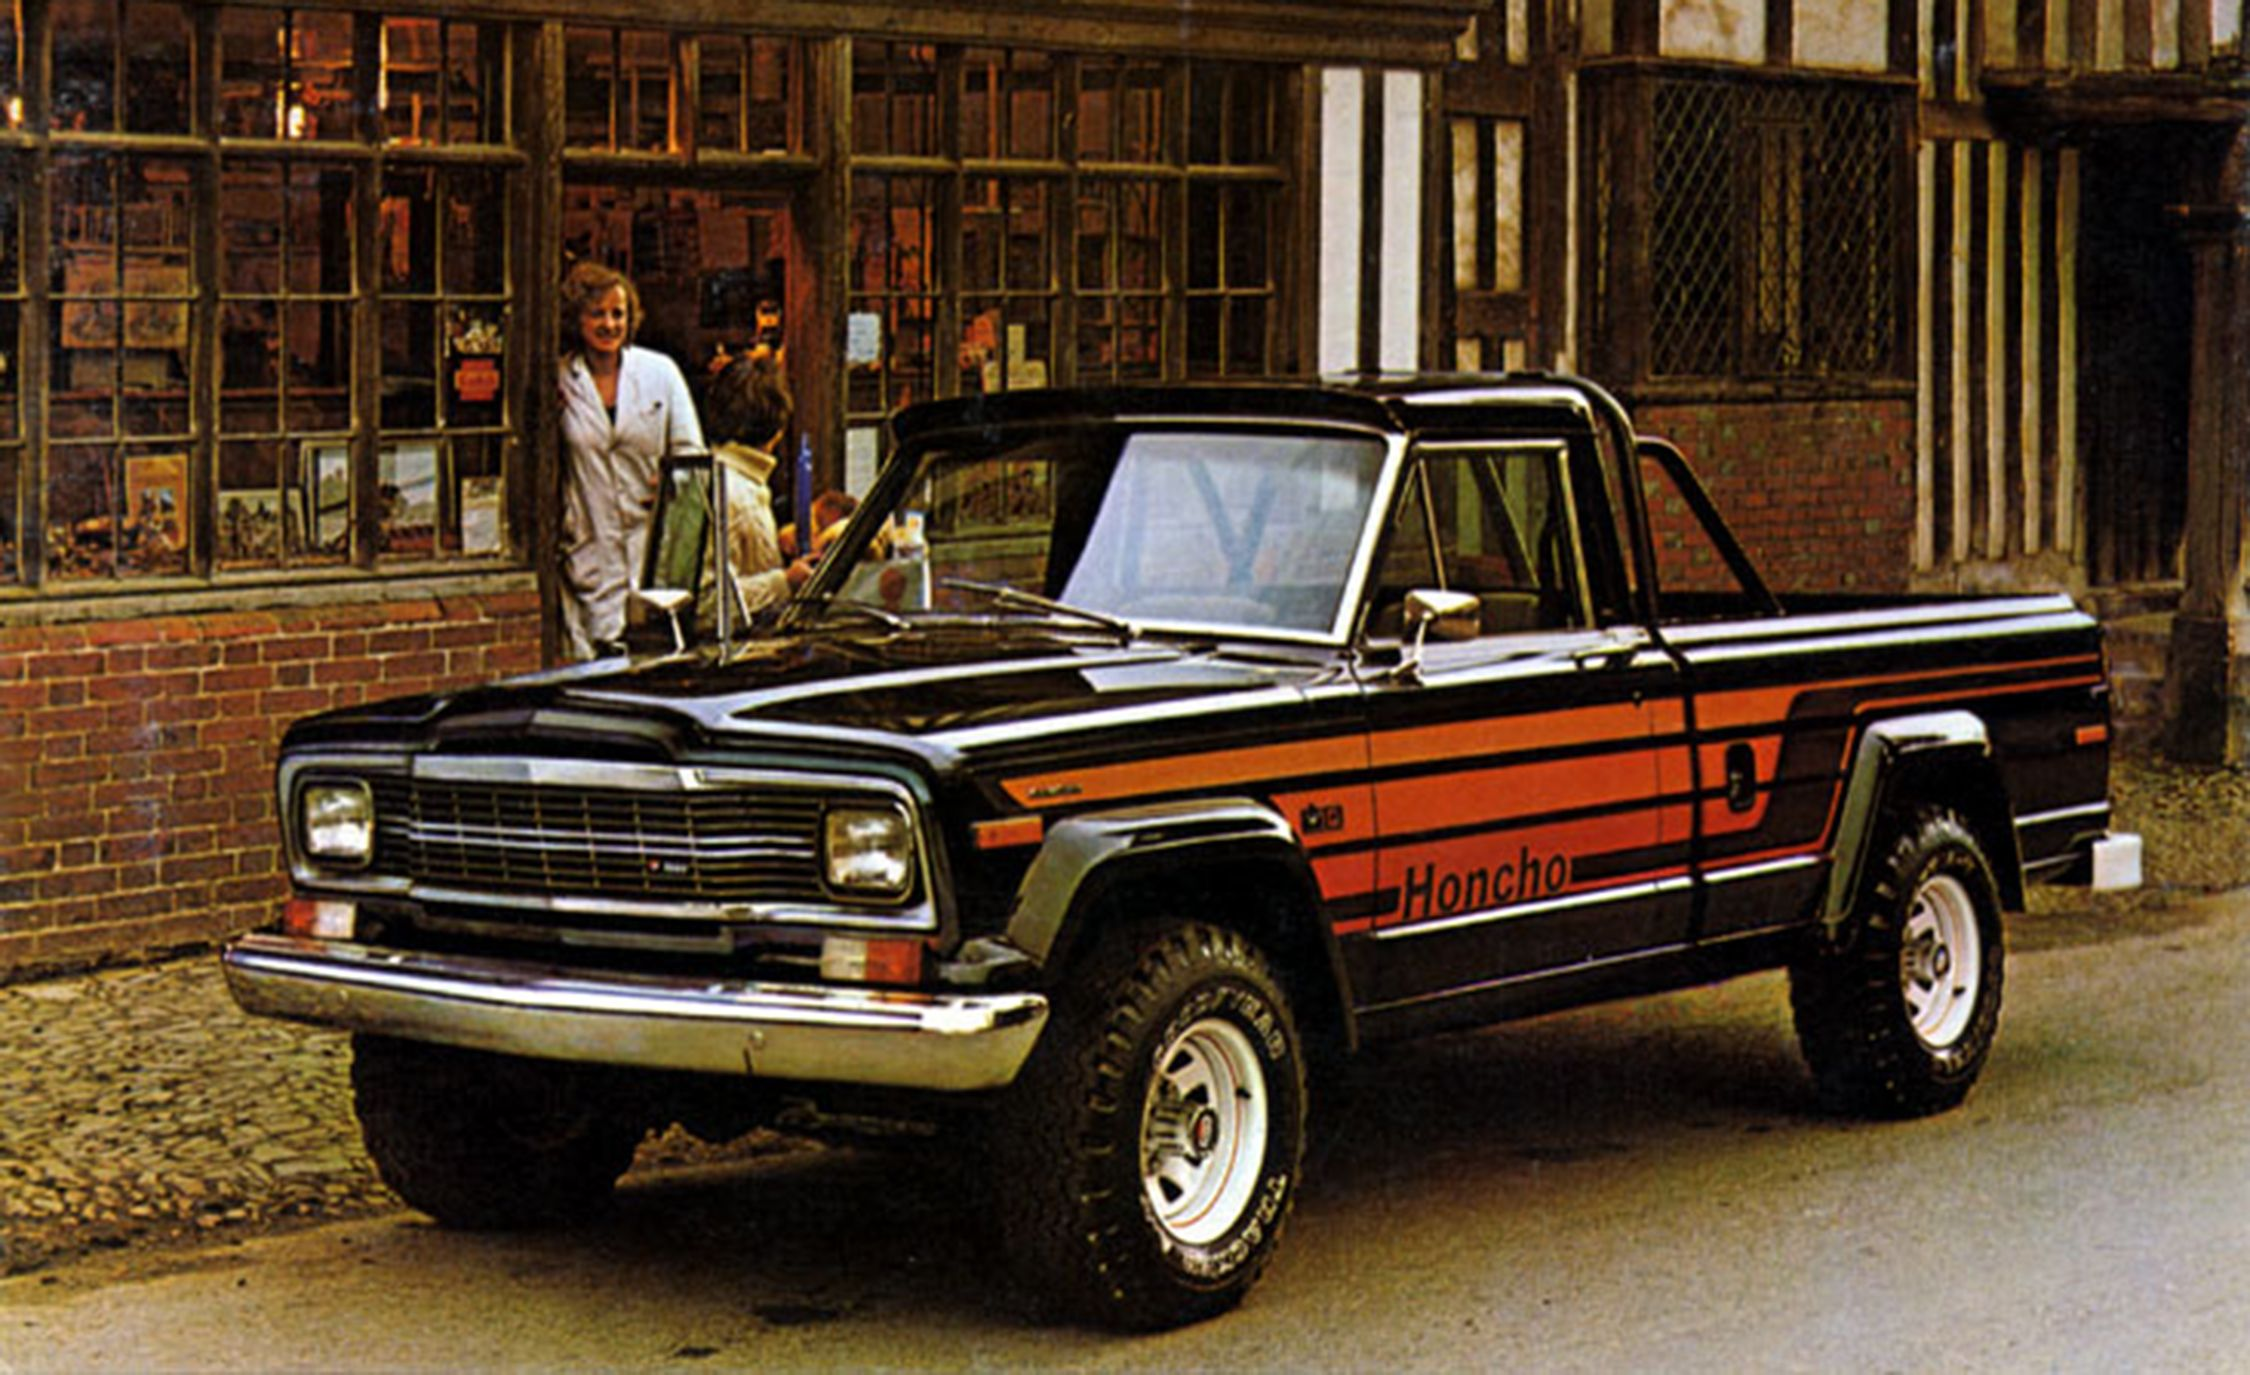 Jeep Pickup Truck History The Lineage Is Longer Than You Think Jeep Pickup Truck Jeep Pickup Jeep